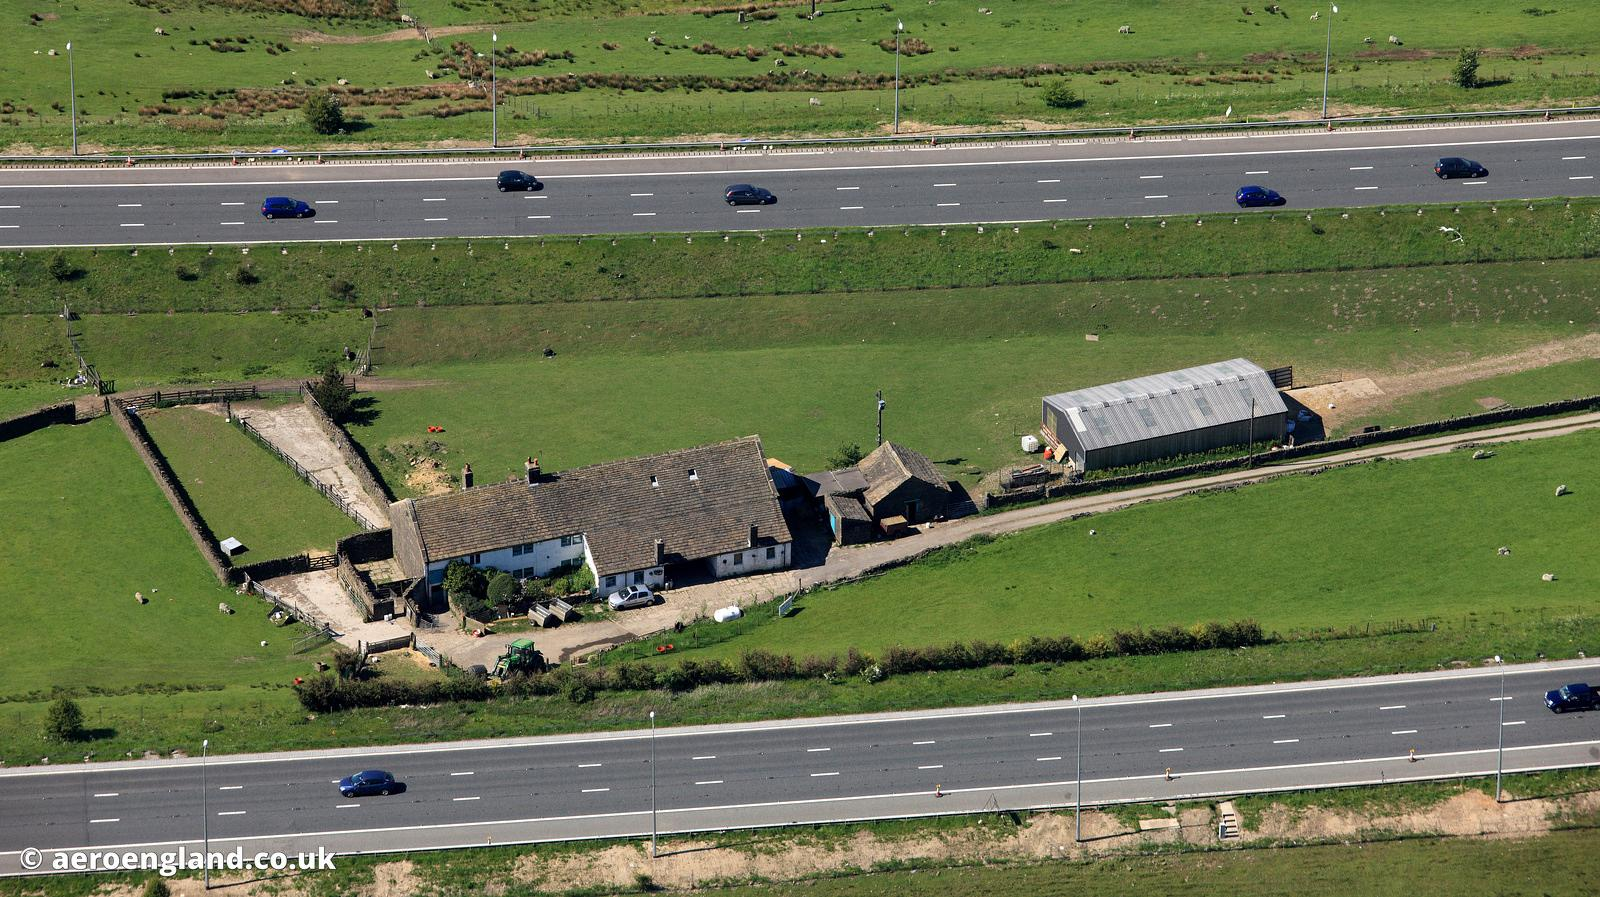 Aerial Photograph Of The Farm In Middle M62 Motorway Yorkshire England UK